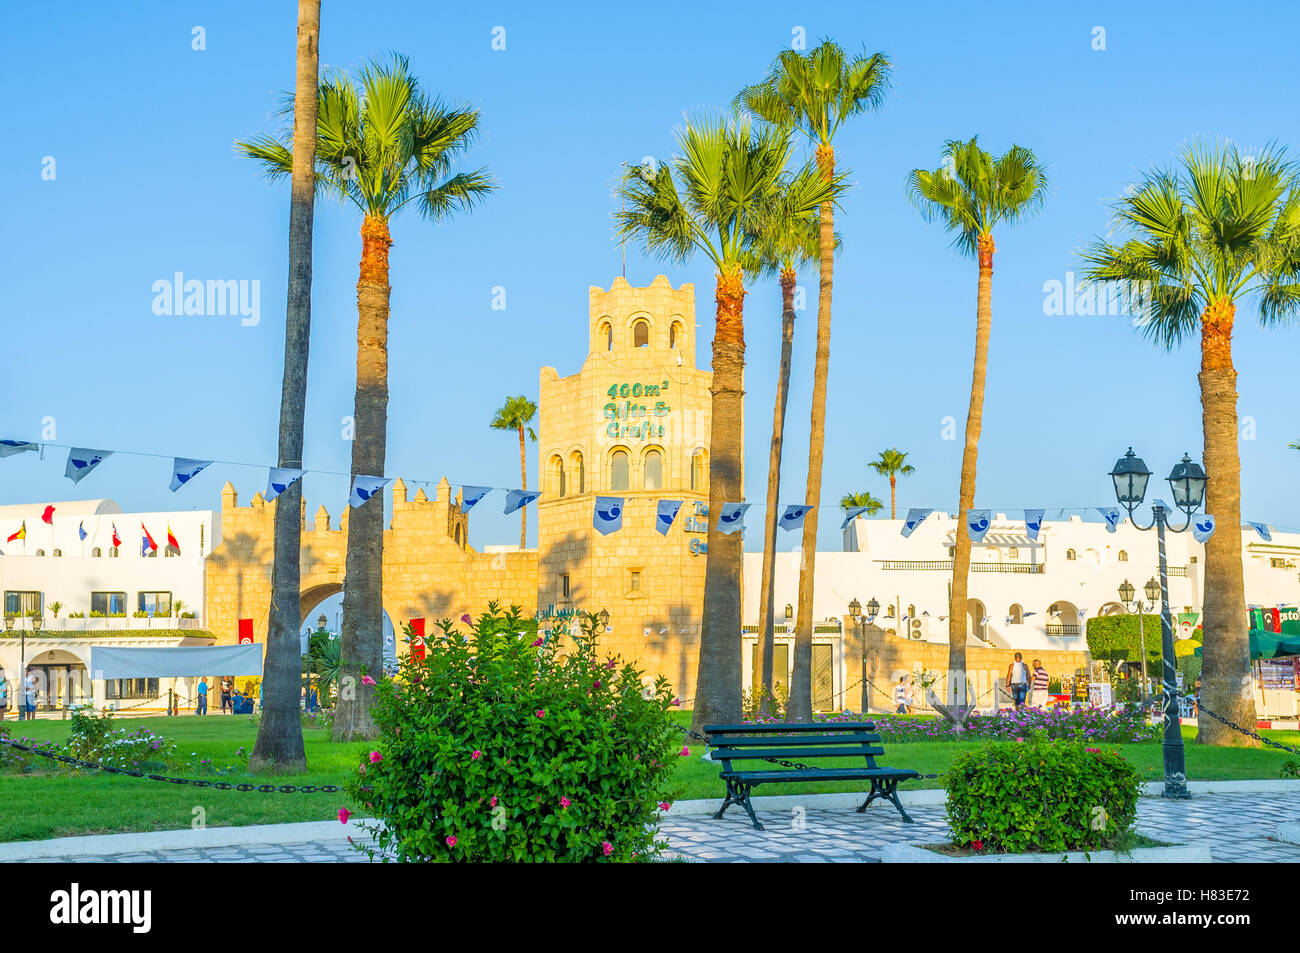 The Port Al Kantaoui is the place where tourists can relax on the seashore, urban promenade or park, Tunisia - Stock Image